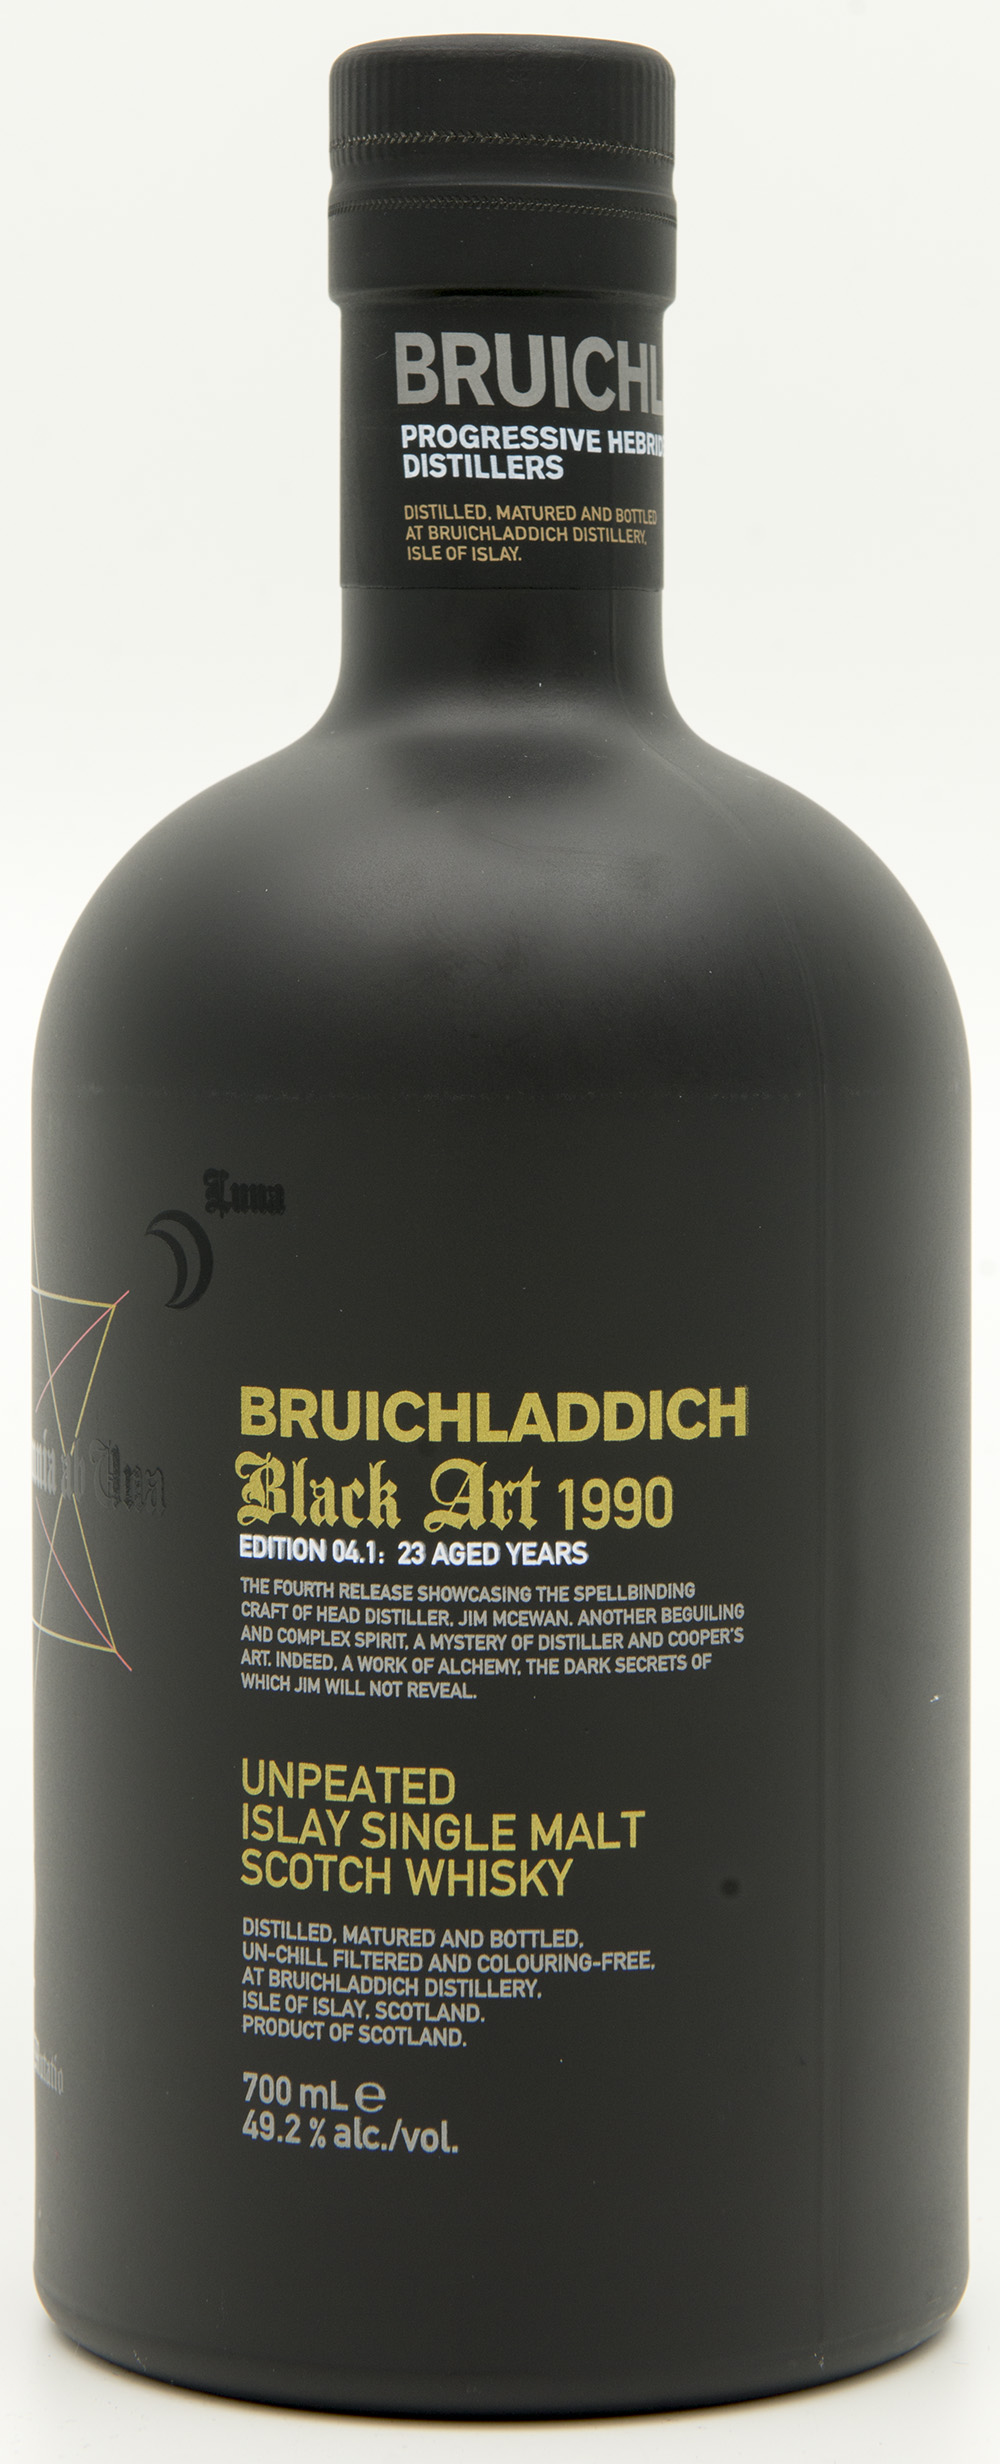 Billede: DSC_6183 - Bruichladdich Black Art 1990 - Edition 04.1 - 23 years - bottle front.jpg